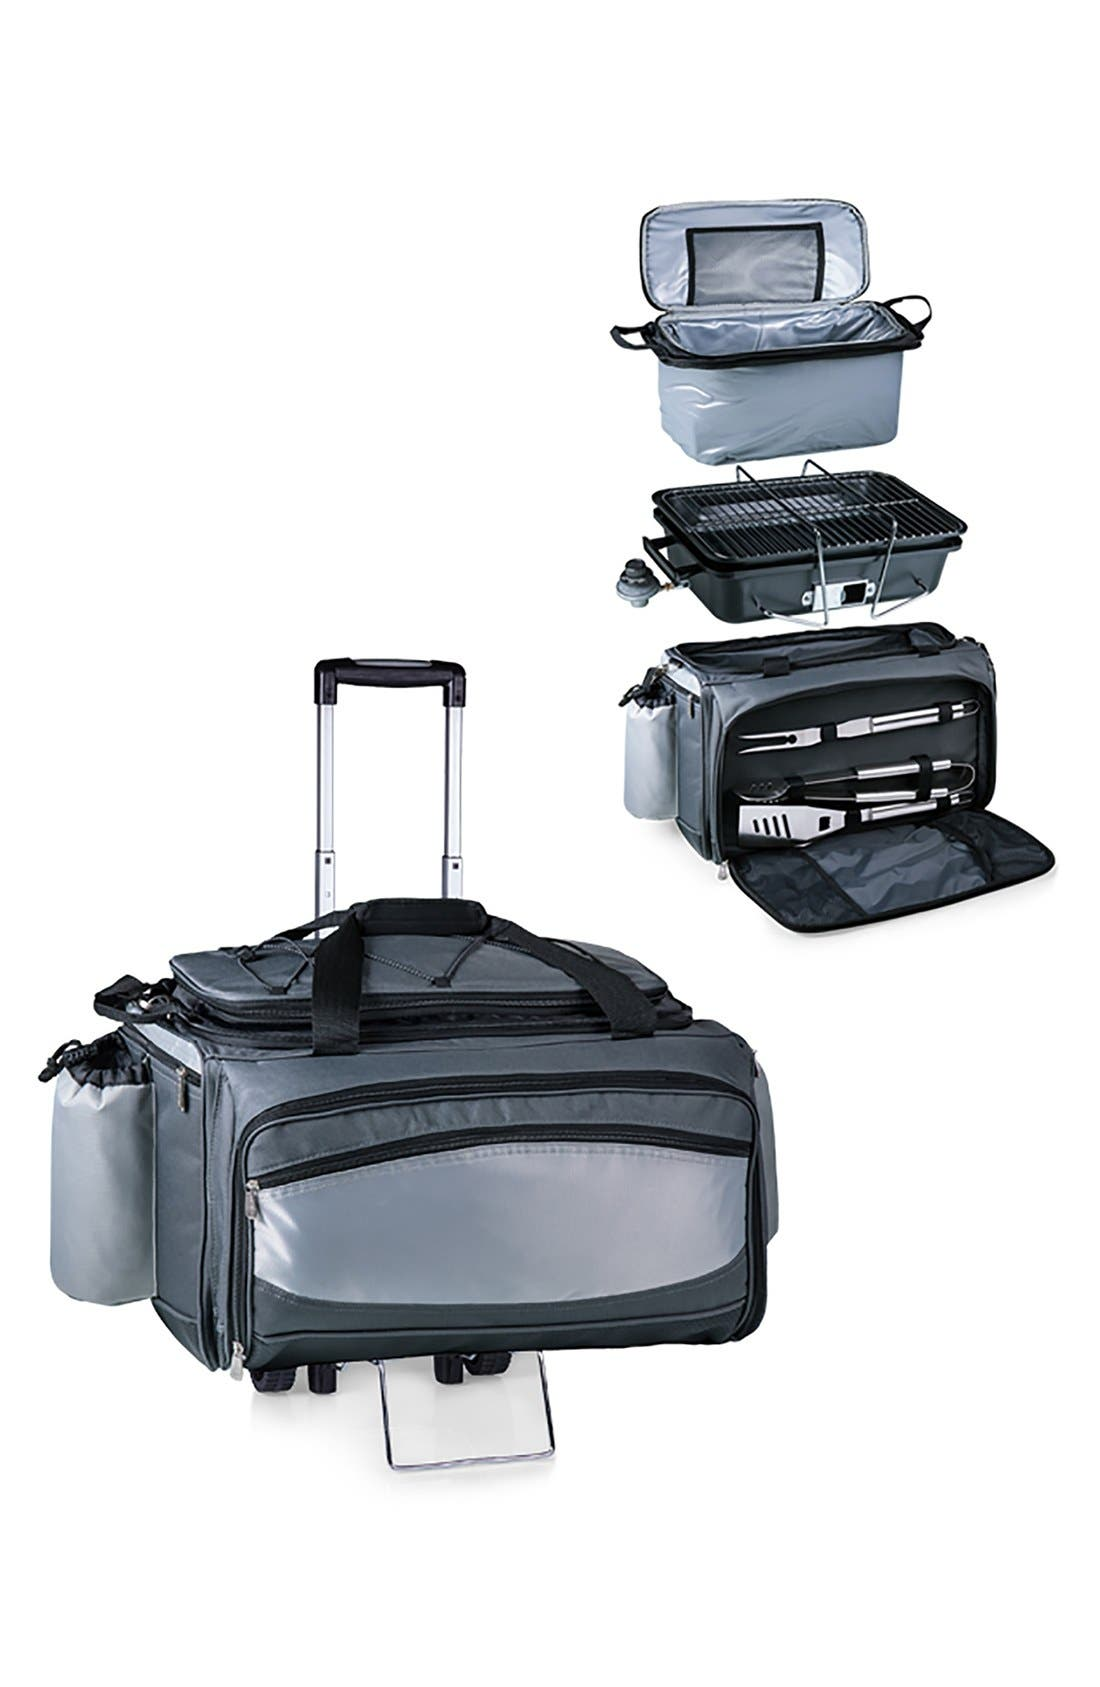 'Vulcan' Barbecue Grill & Cooler Trolley,                             Main thumbnail 1, color,                             Black